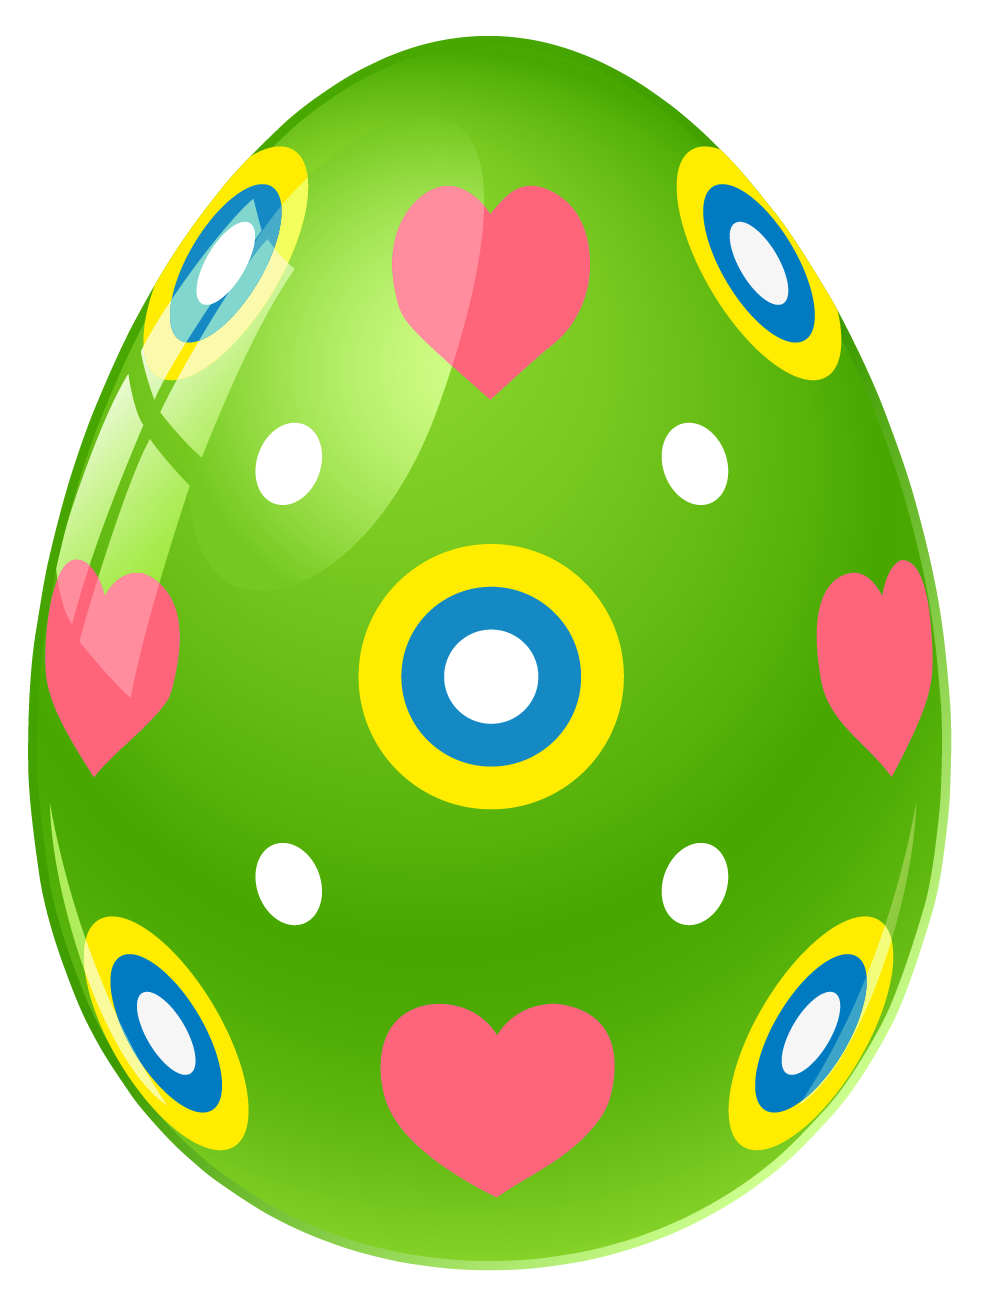 983x1297 Free Egg Free Easter Egg Clipart Collection 2